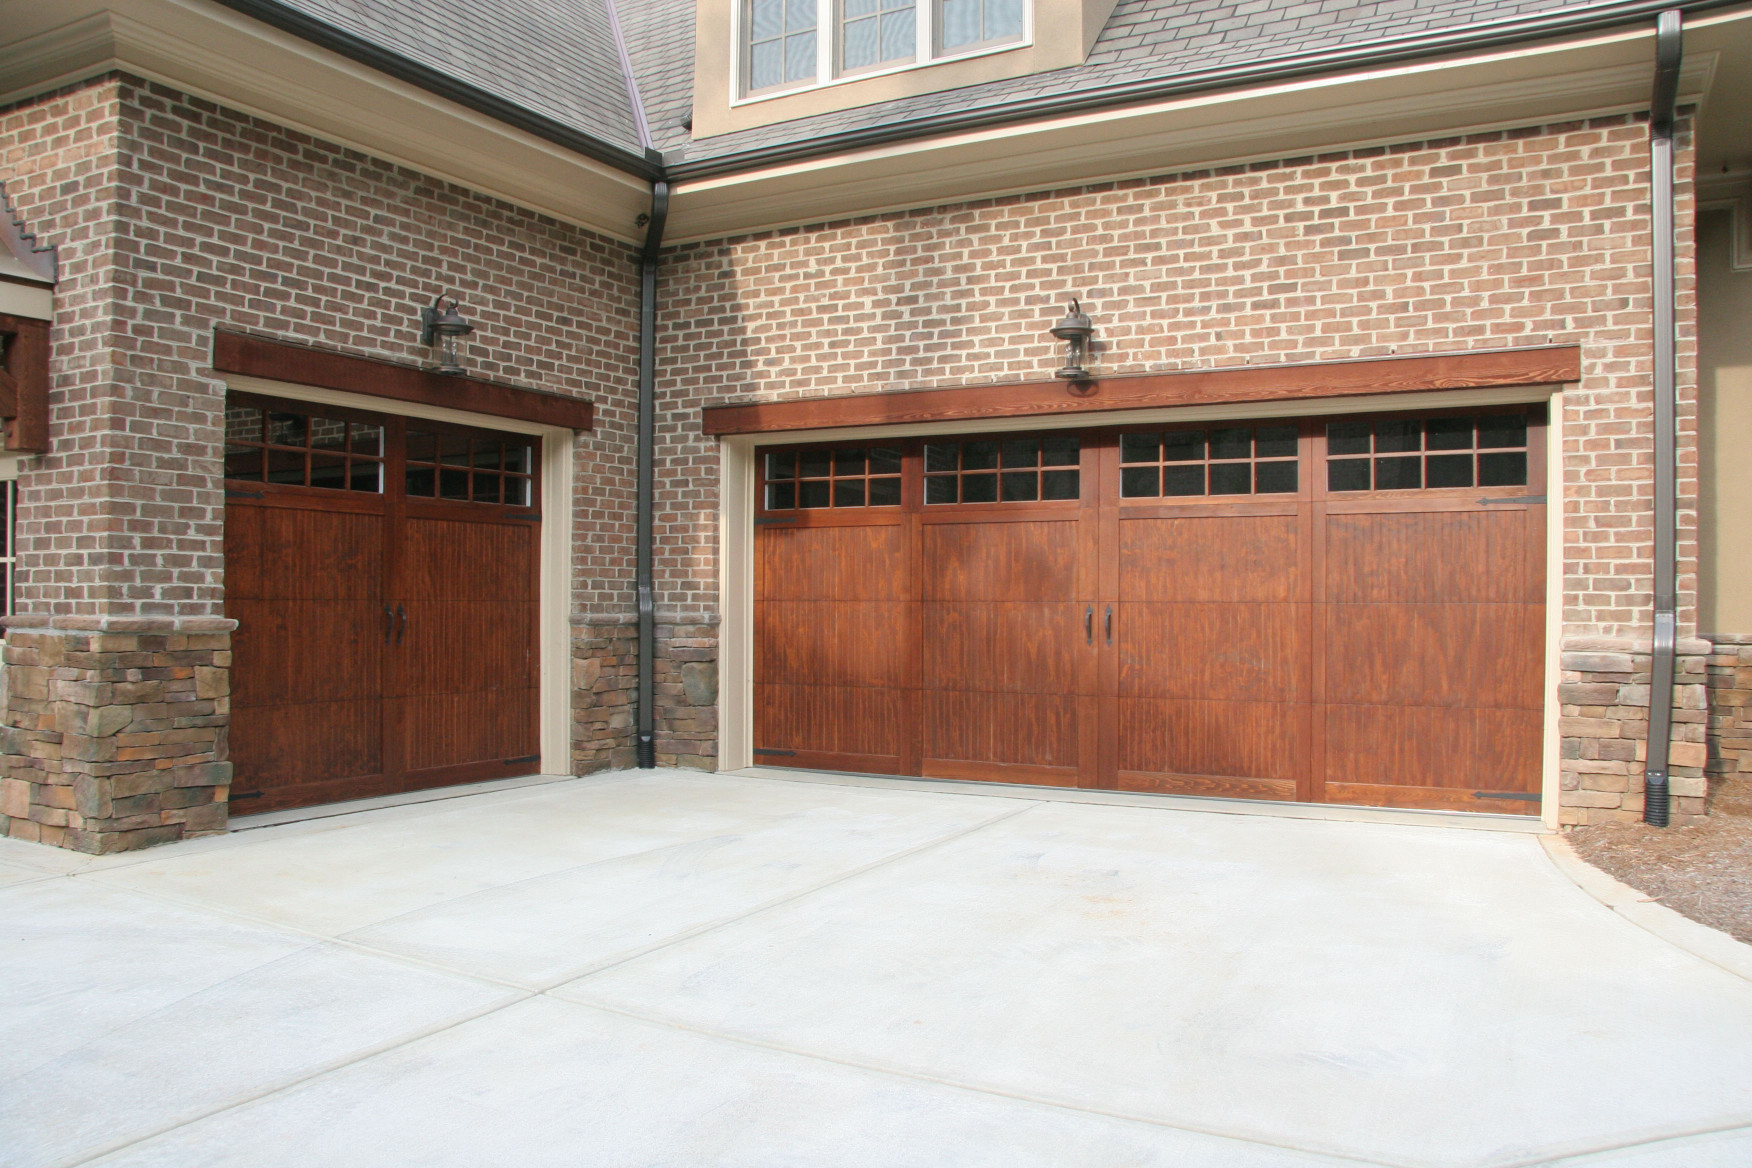 Headers add the detail and elegance to create an appealing addition to this garage entry.